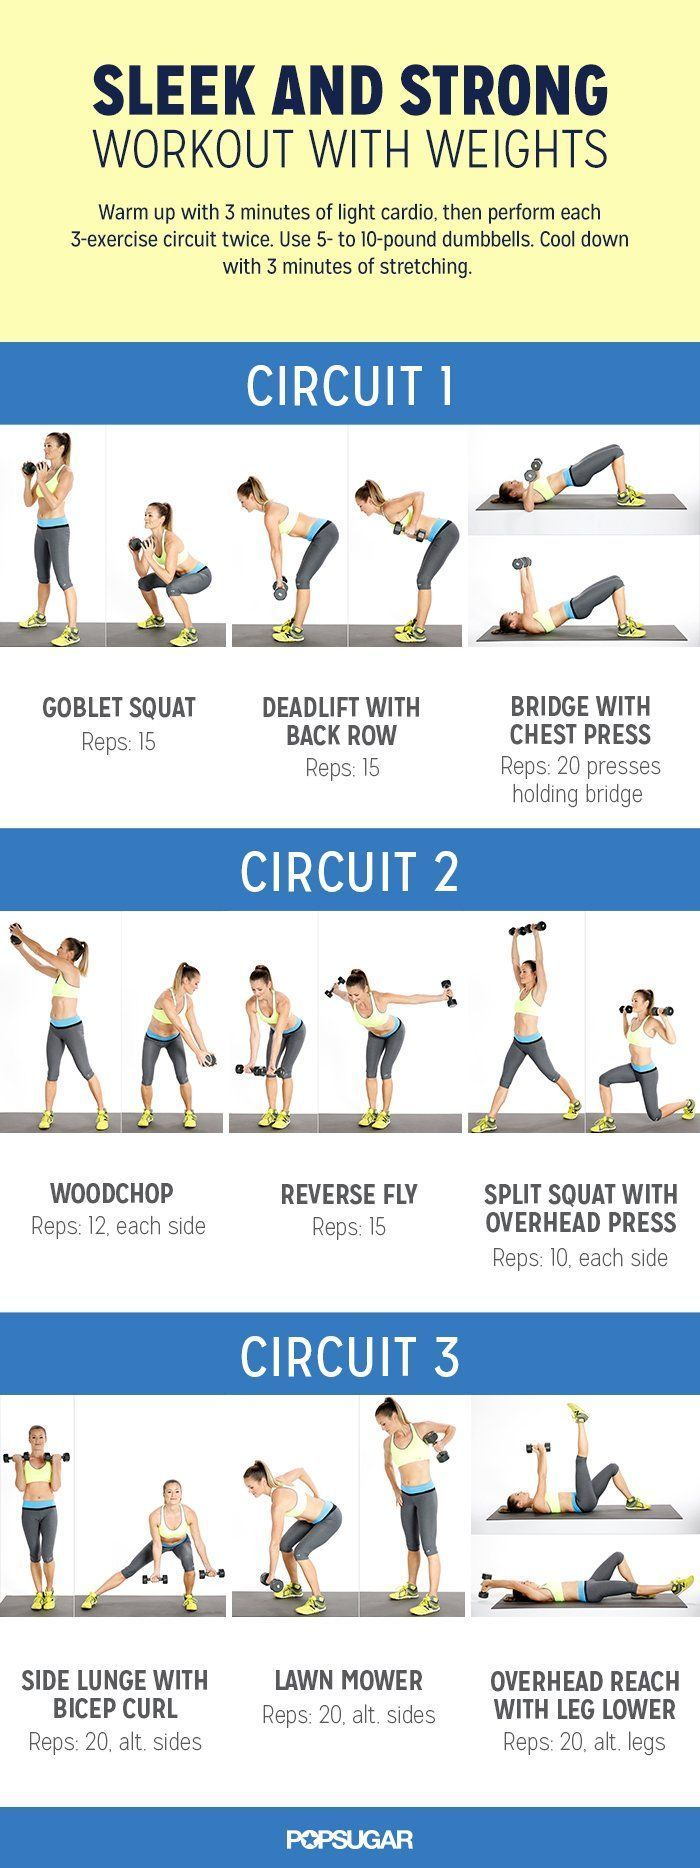 Home Workout Plan For Men best 25+ no gym workouts ideas only on pinterest | 10 week workout